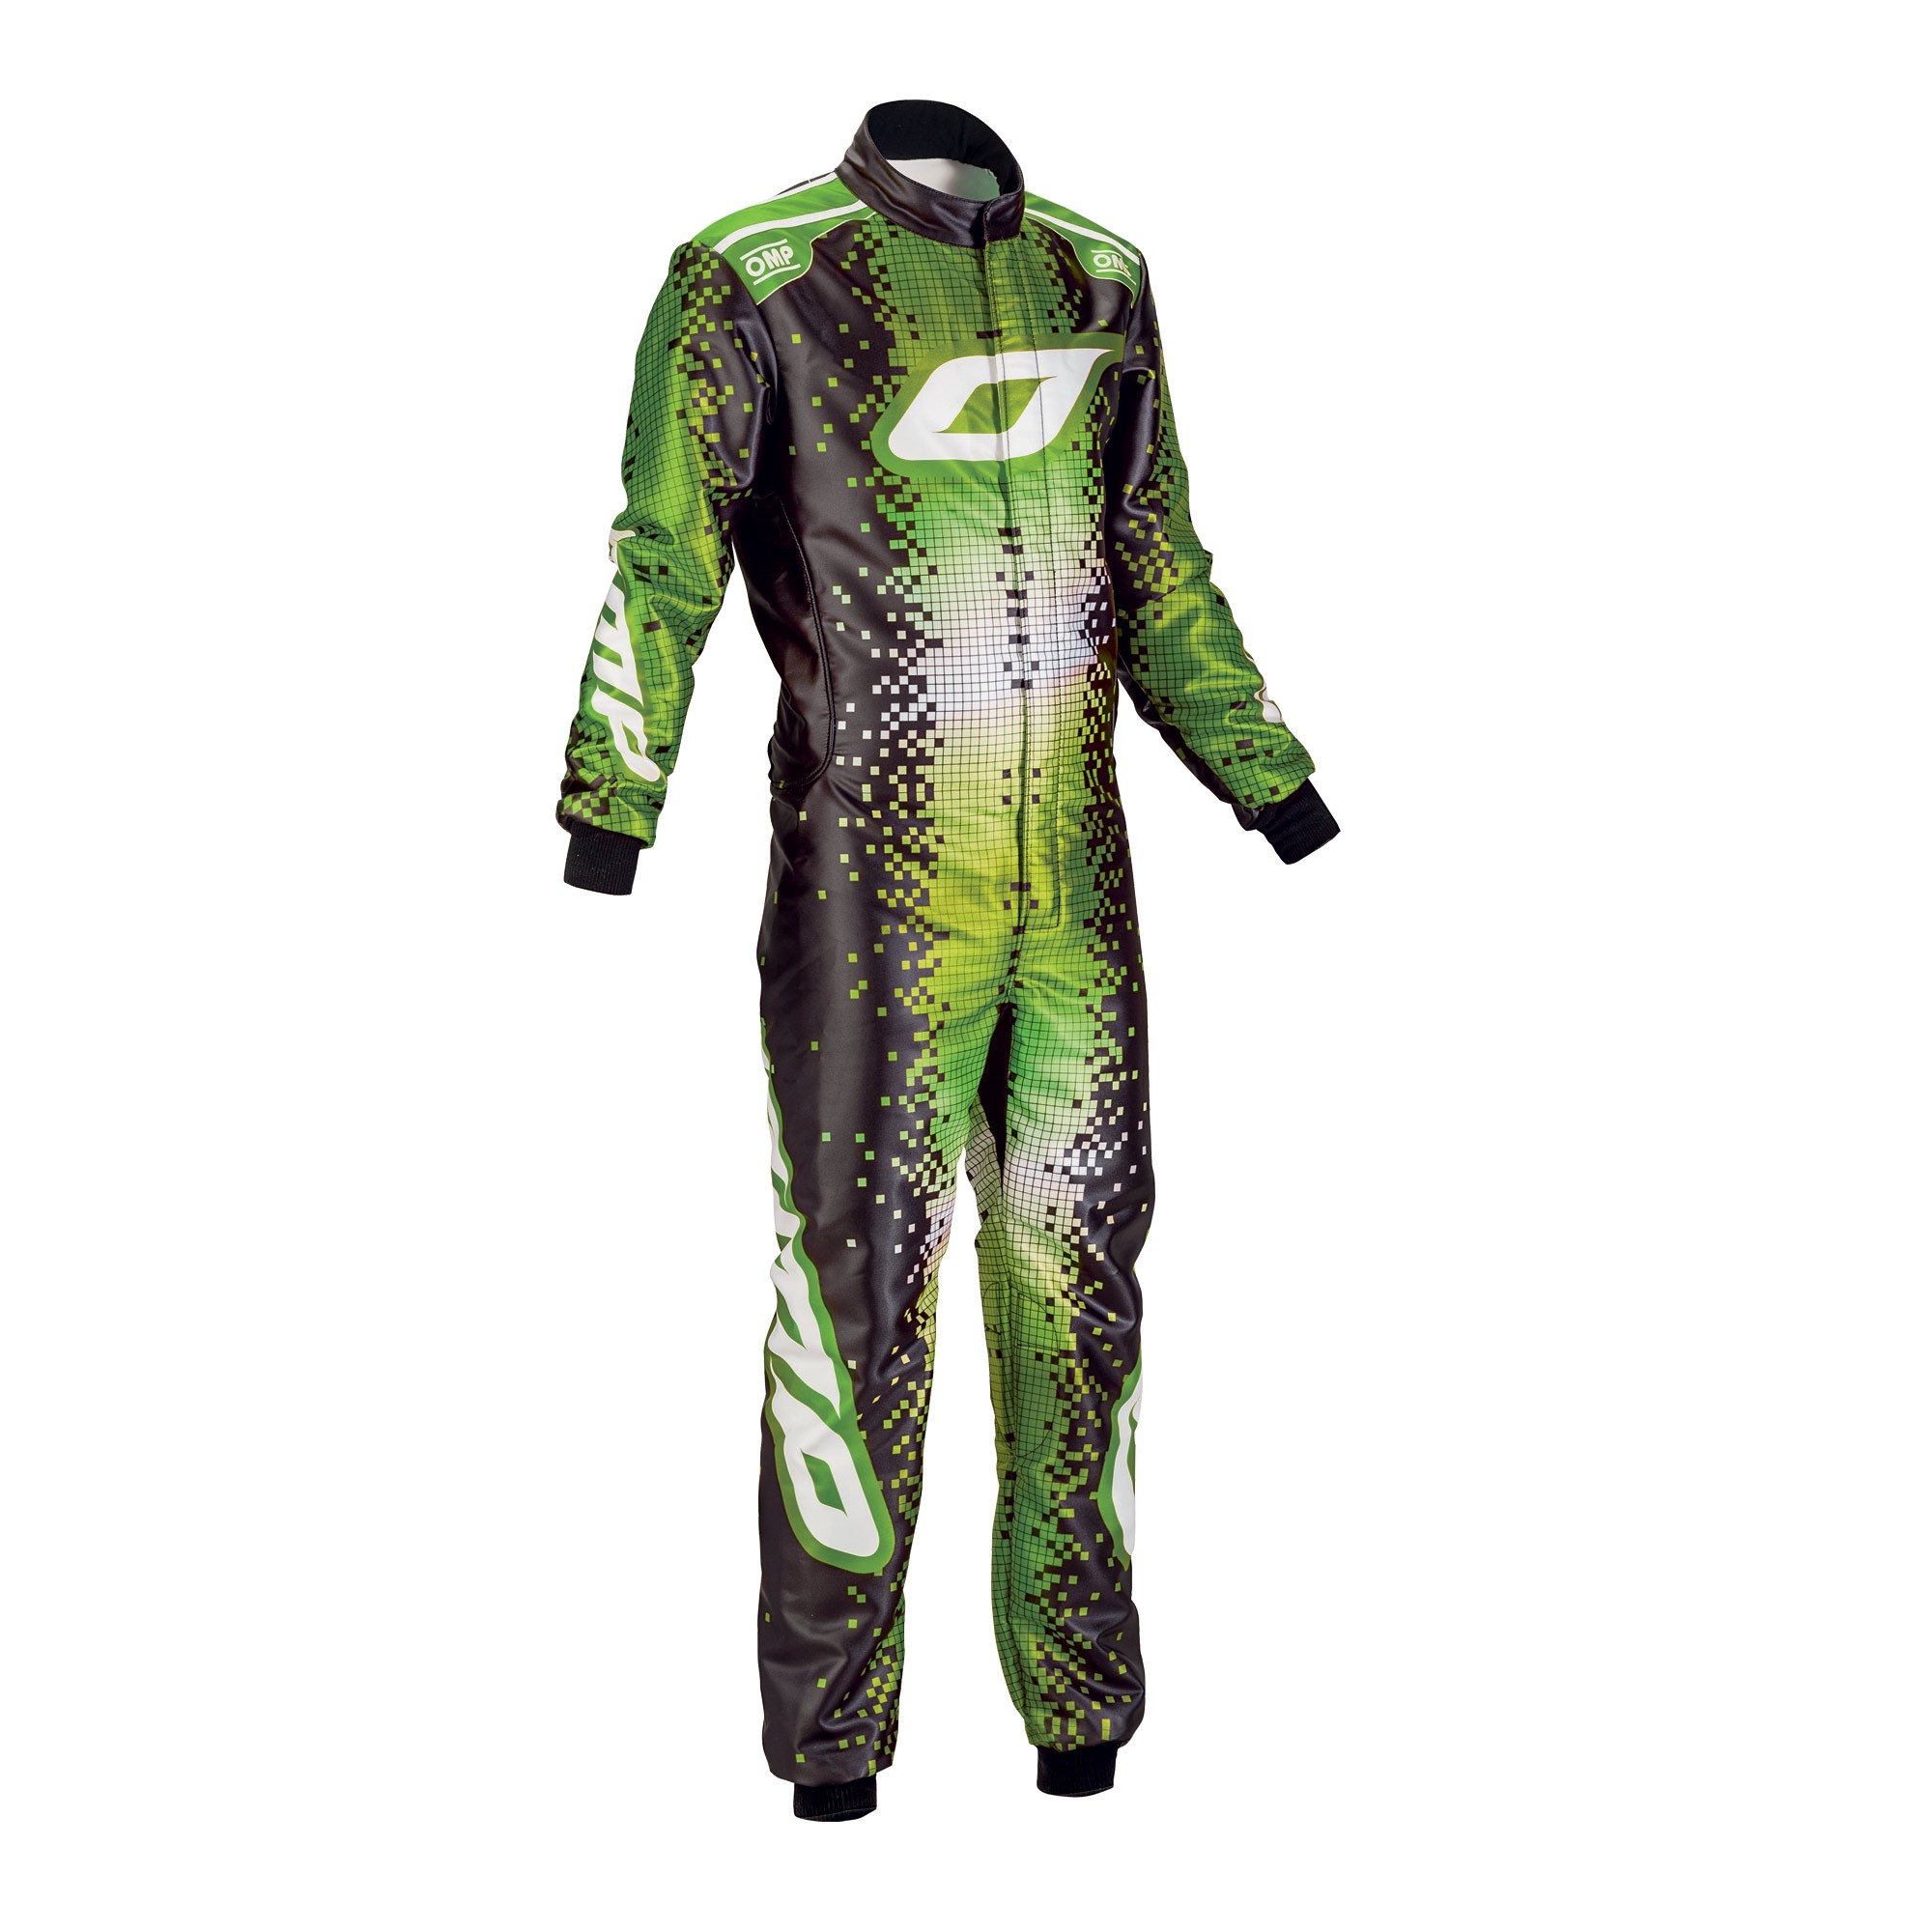 KS ART SUIT-Totally printed kart top suit